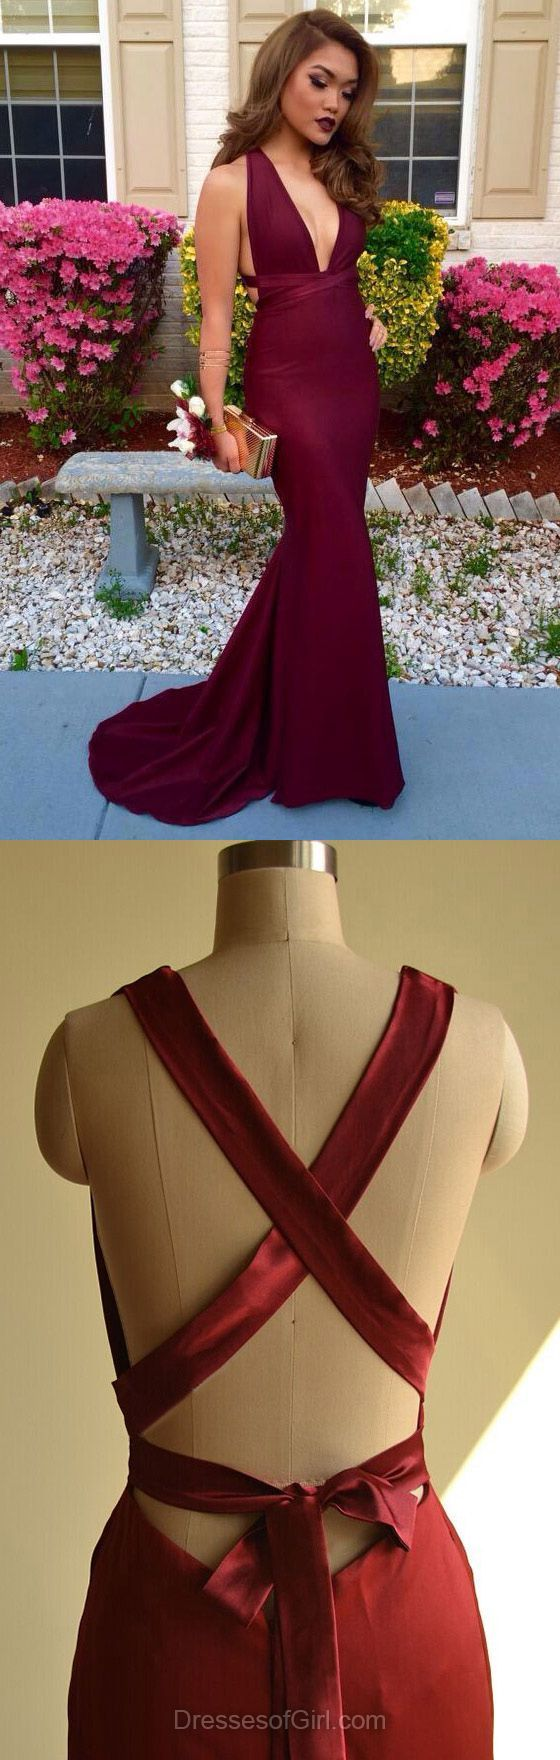 Trendy burgundy prom dresses mermaid vneck evening party dresses